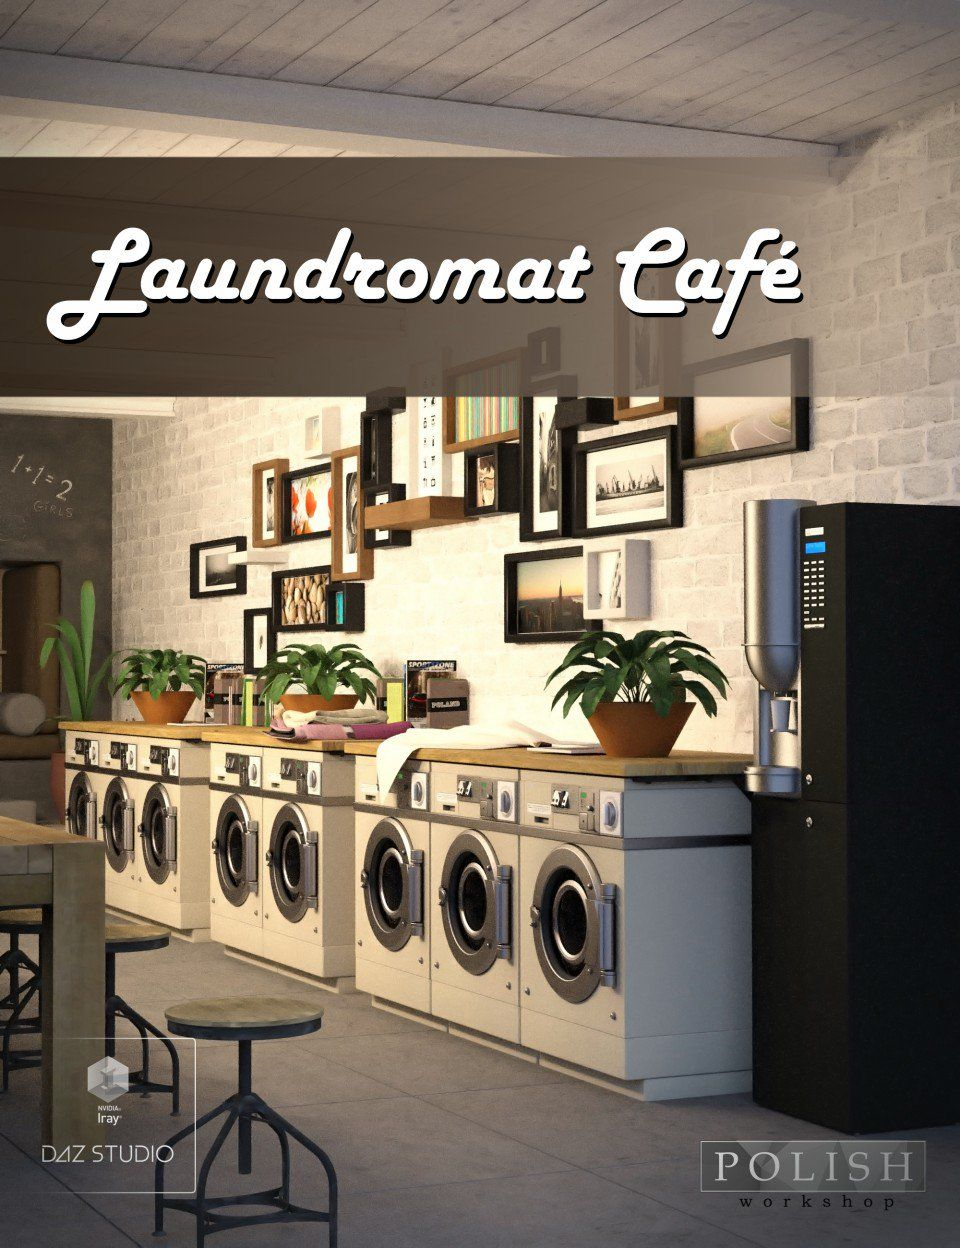 Laundromat Cafe Laundromat business, Laundry business